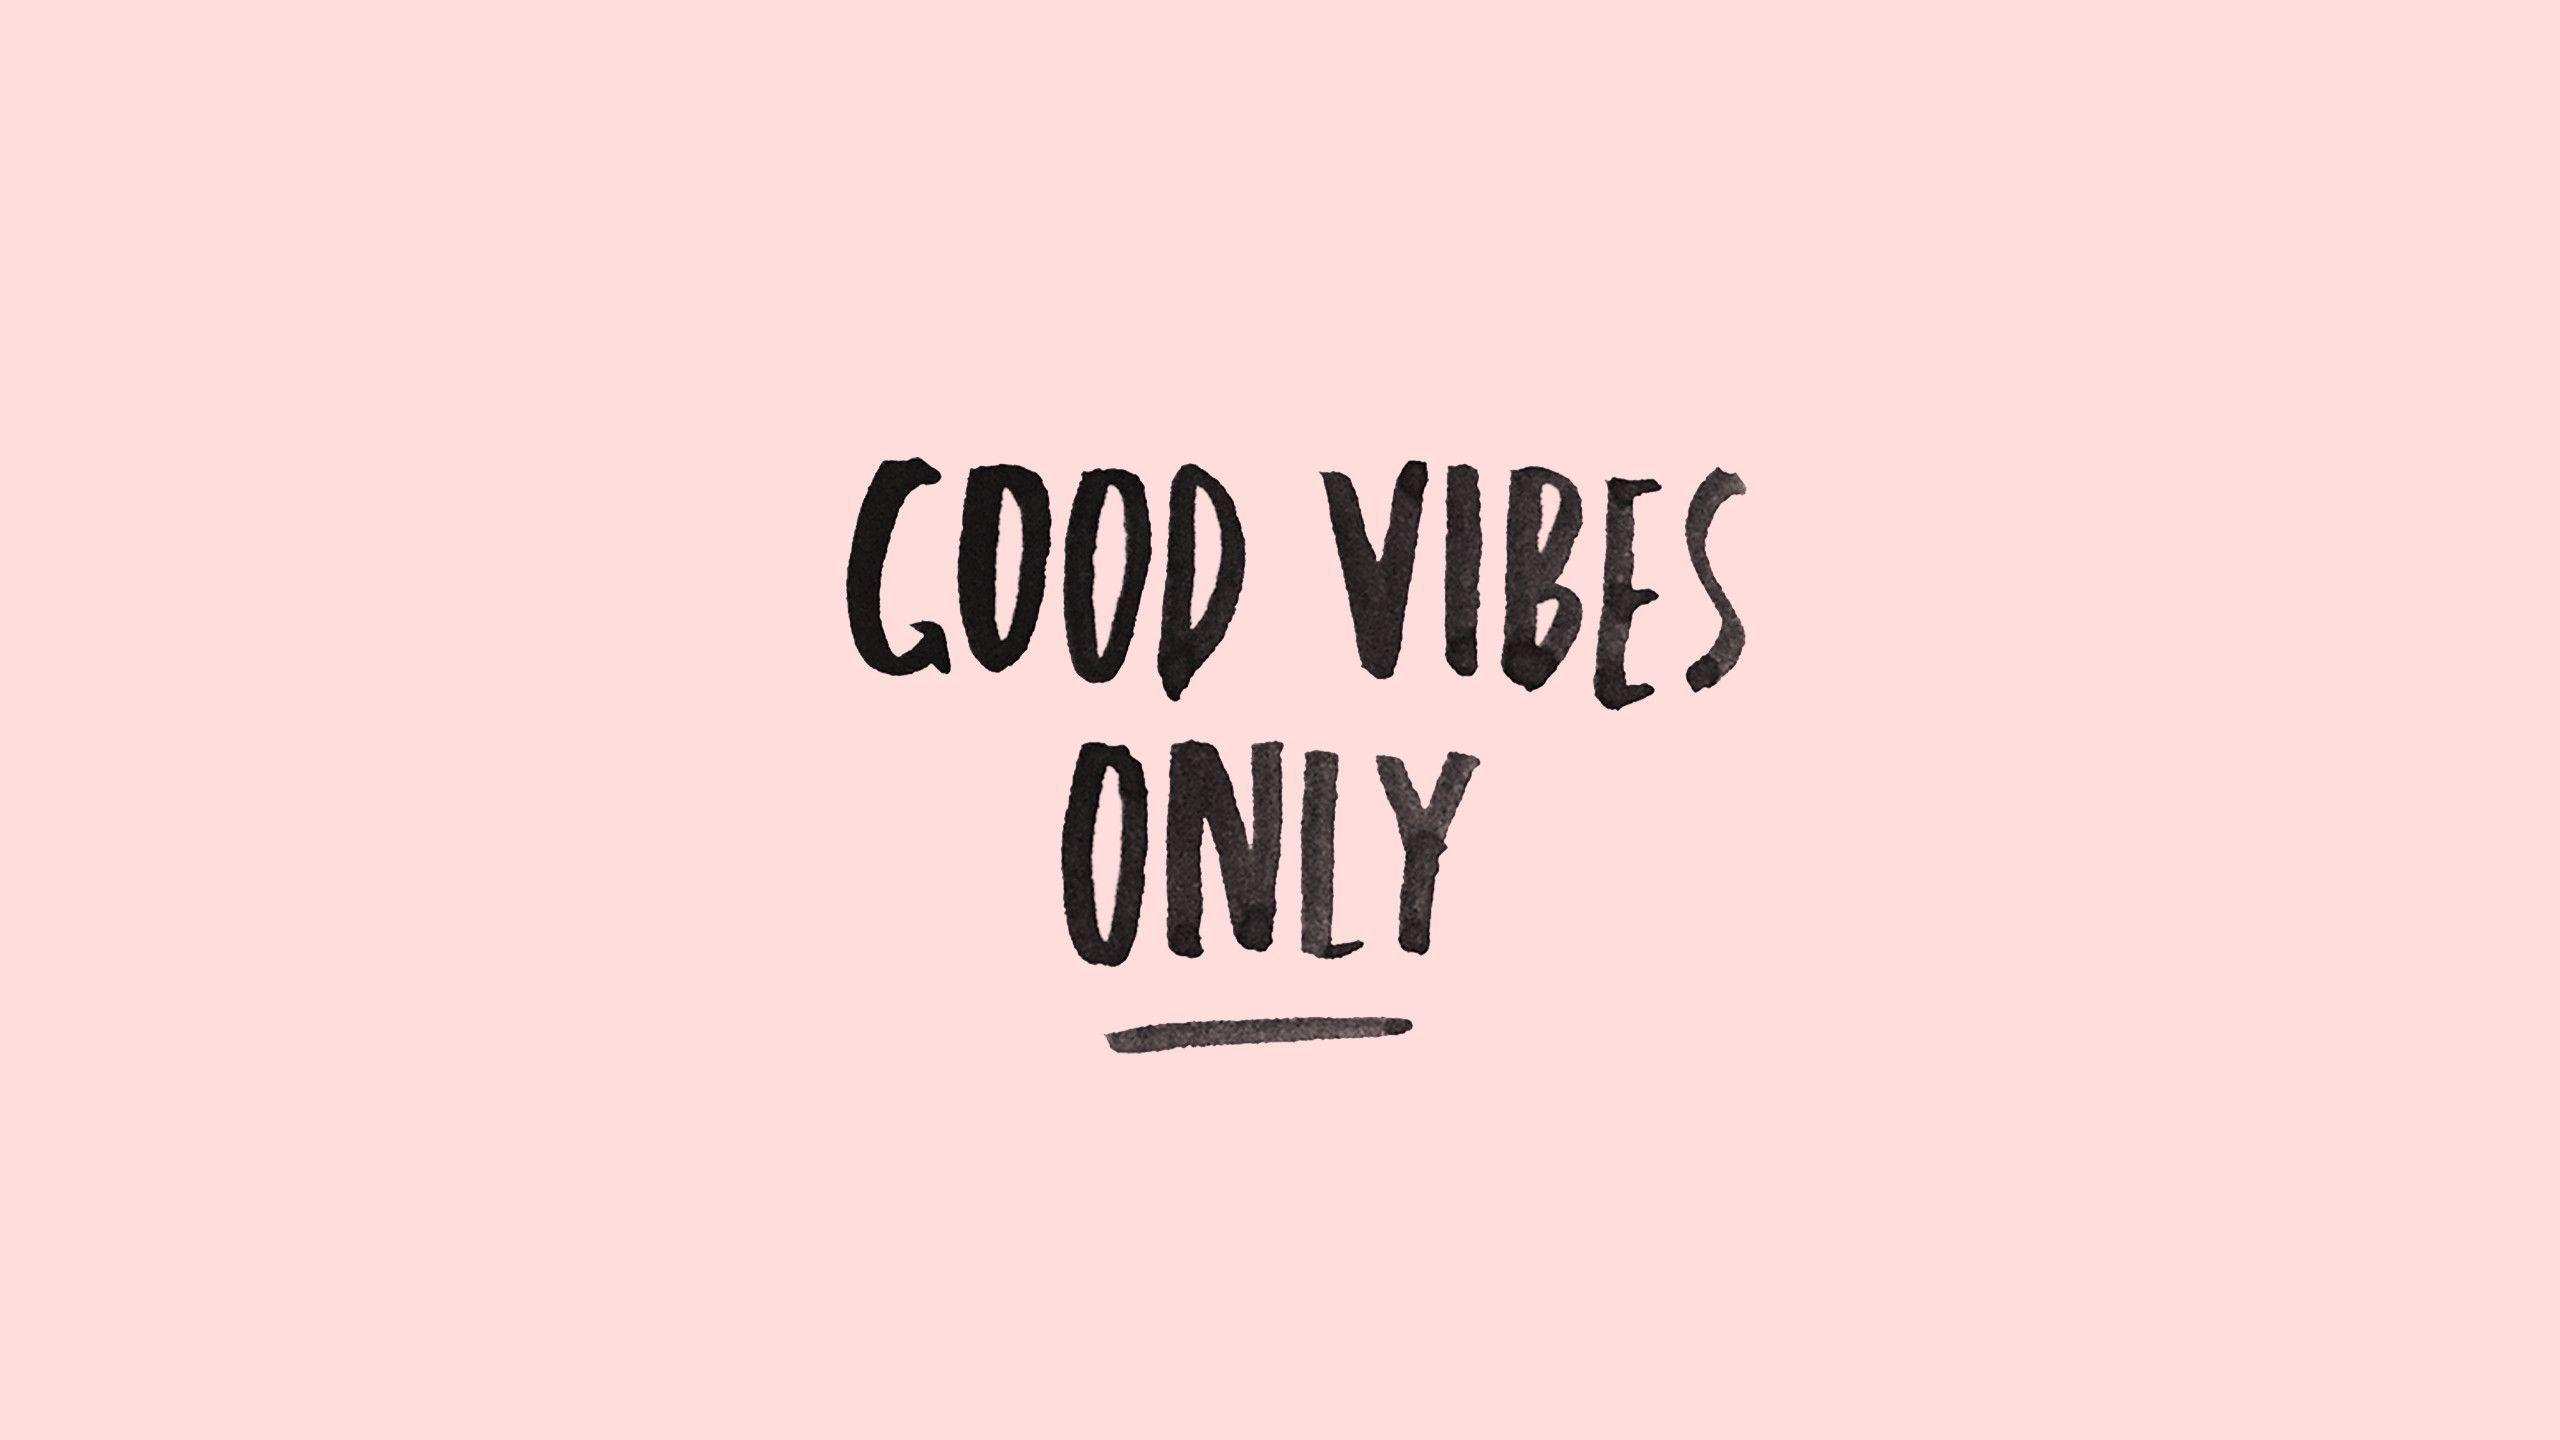 Positive Vibes Only Macbook Wallpaper Hd In 2021 Good Vibes Wallpaper Good Vibes Only Good Vibes